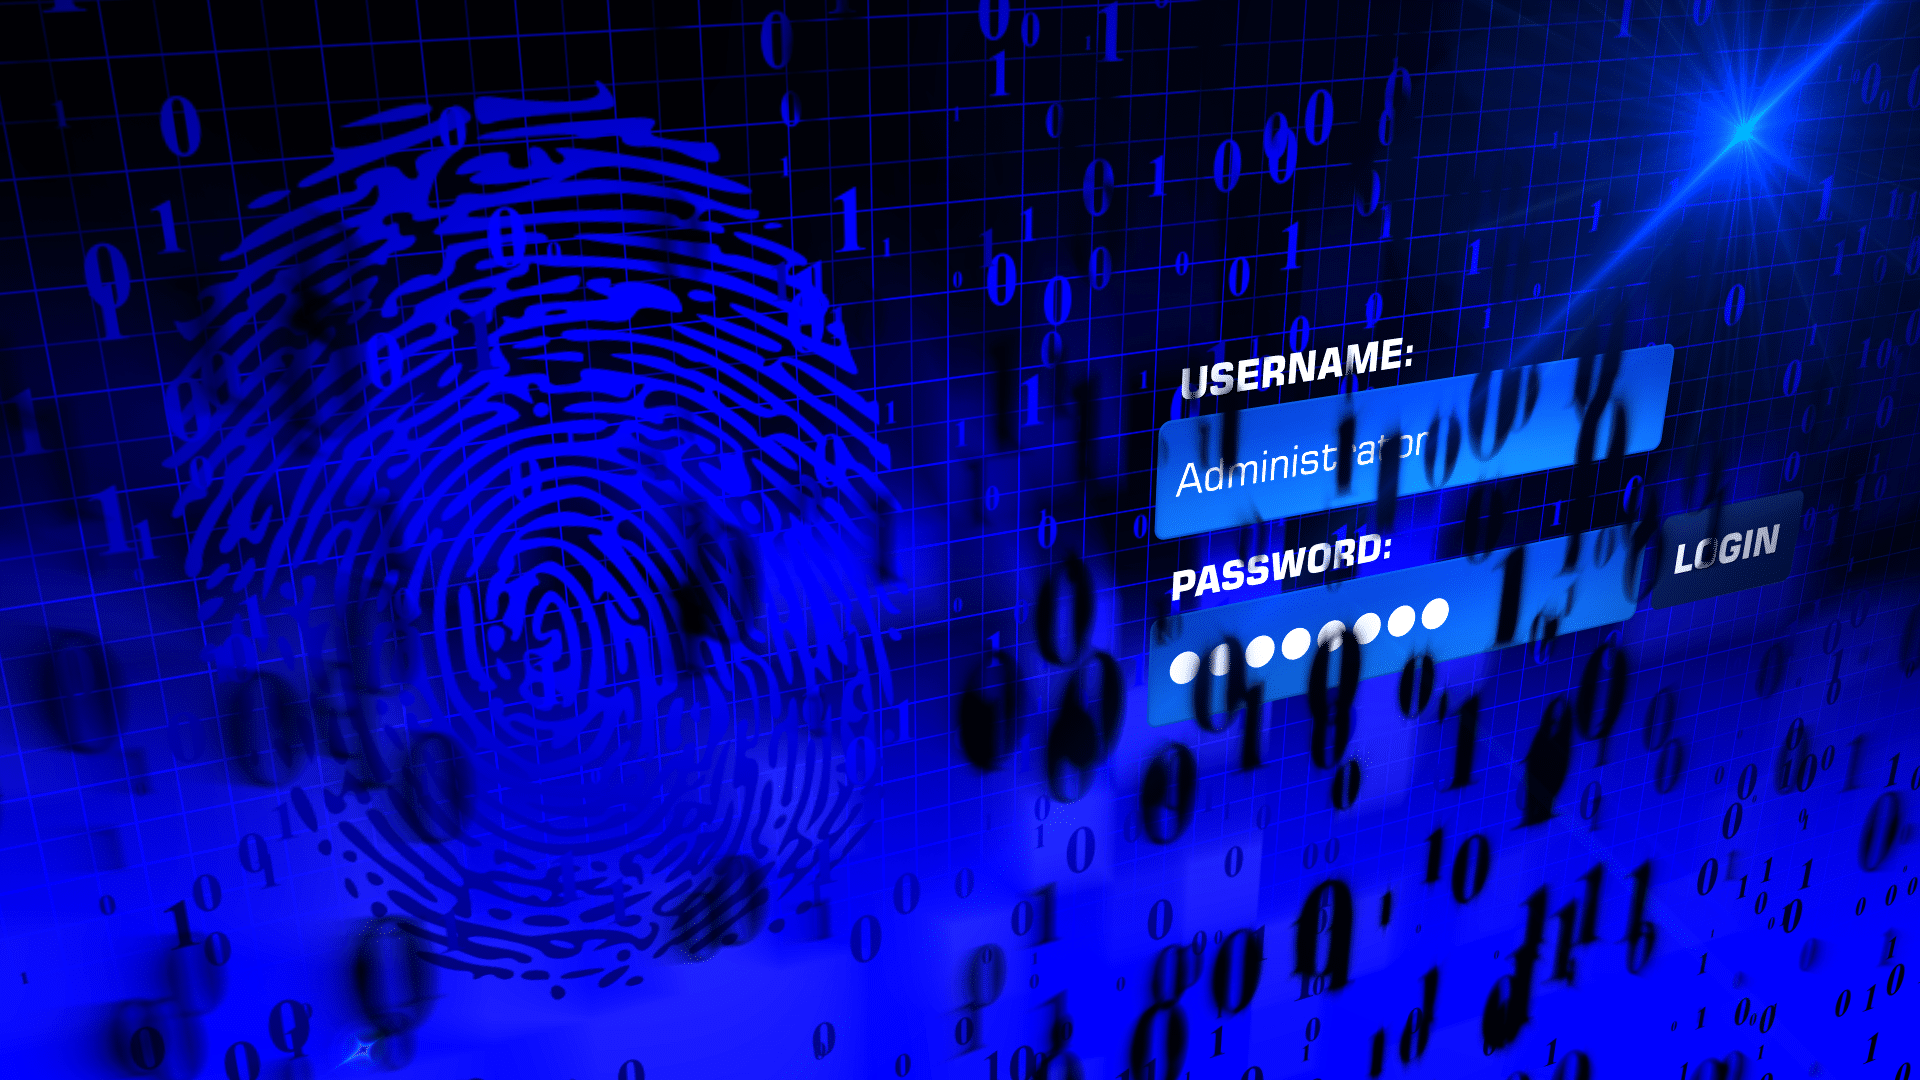 stylized login screen asks for a username and password